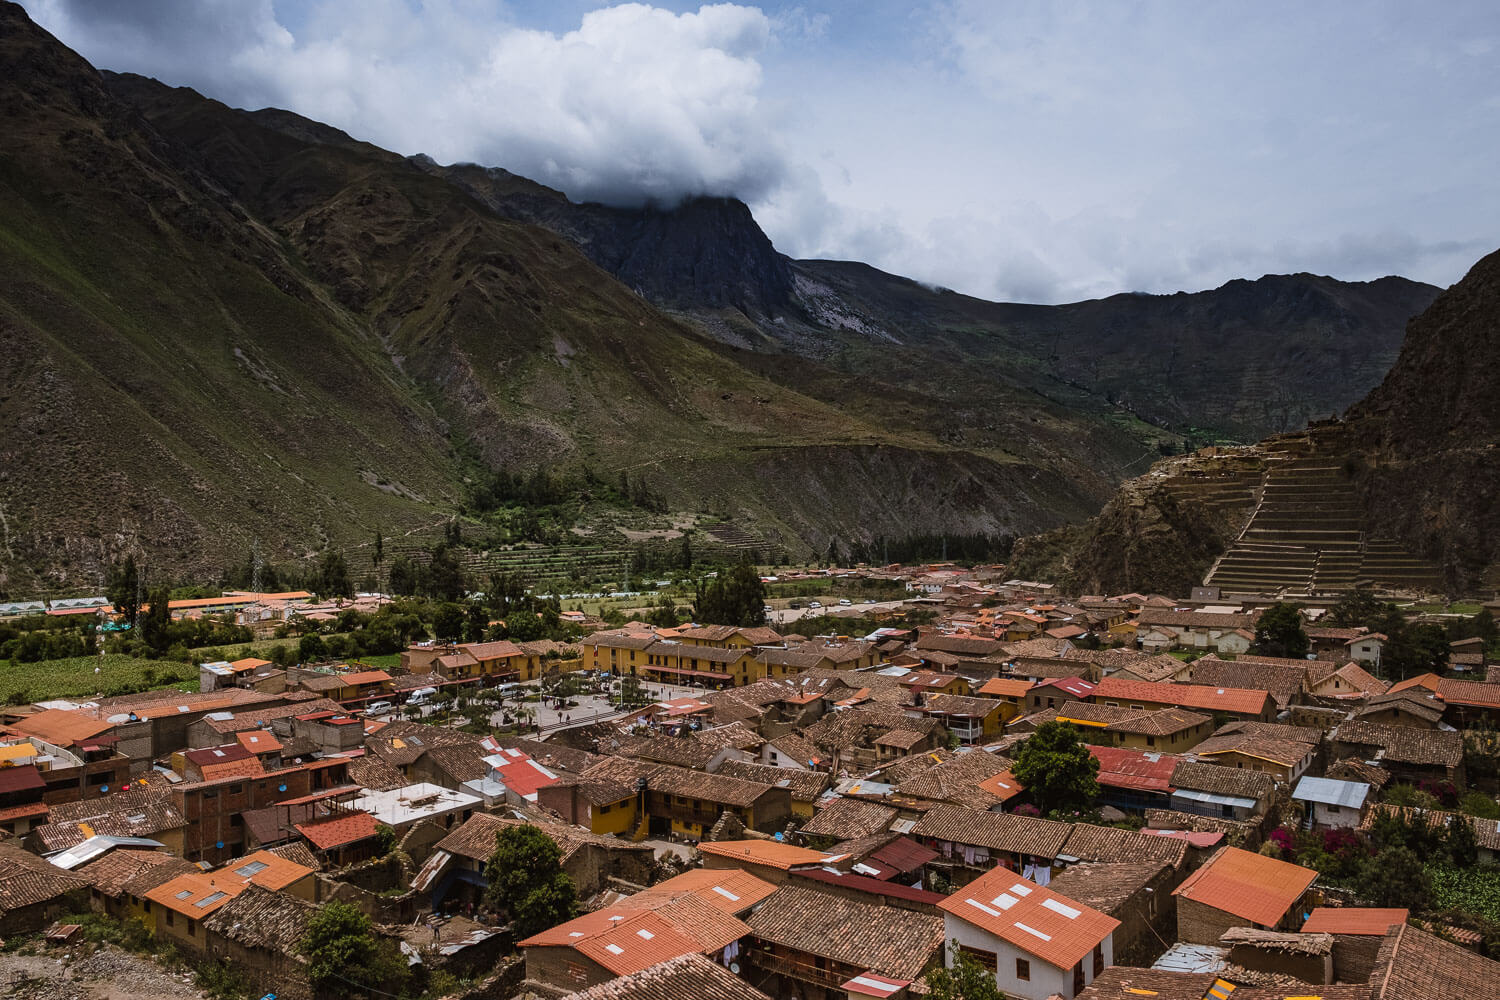 """The City of Ollantaytambo in The Sacred Valley, Peru. Travel photography and guide by © Natasha Lequepeys for """"And Then I Met Yoko"""". #travelblog #fujifilm #sacredvalleyitinerary"""